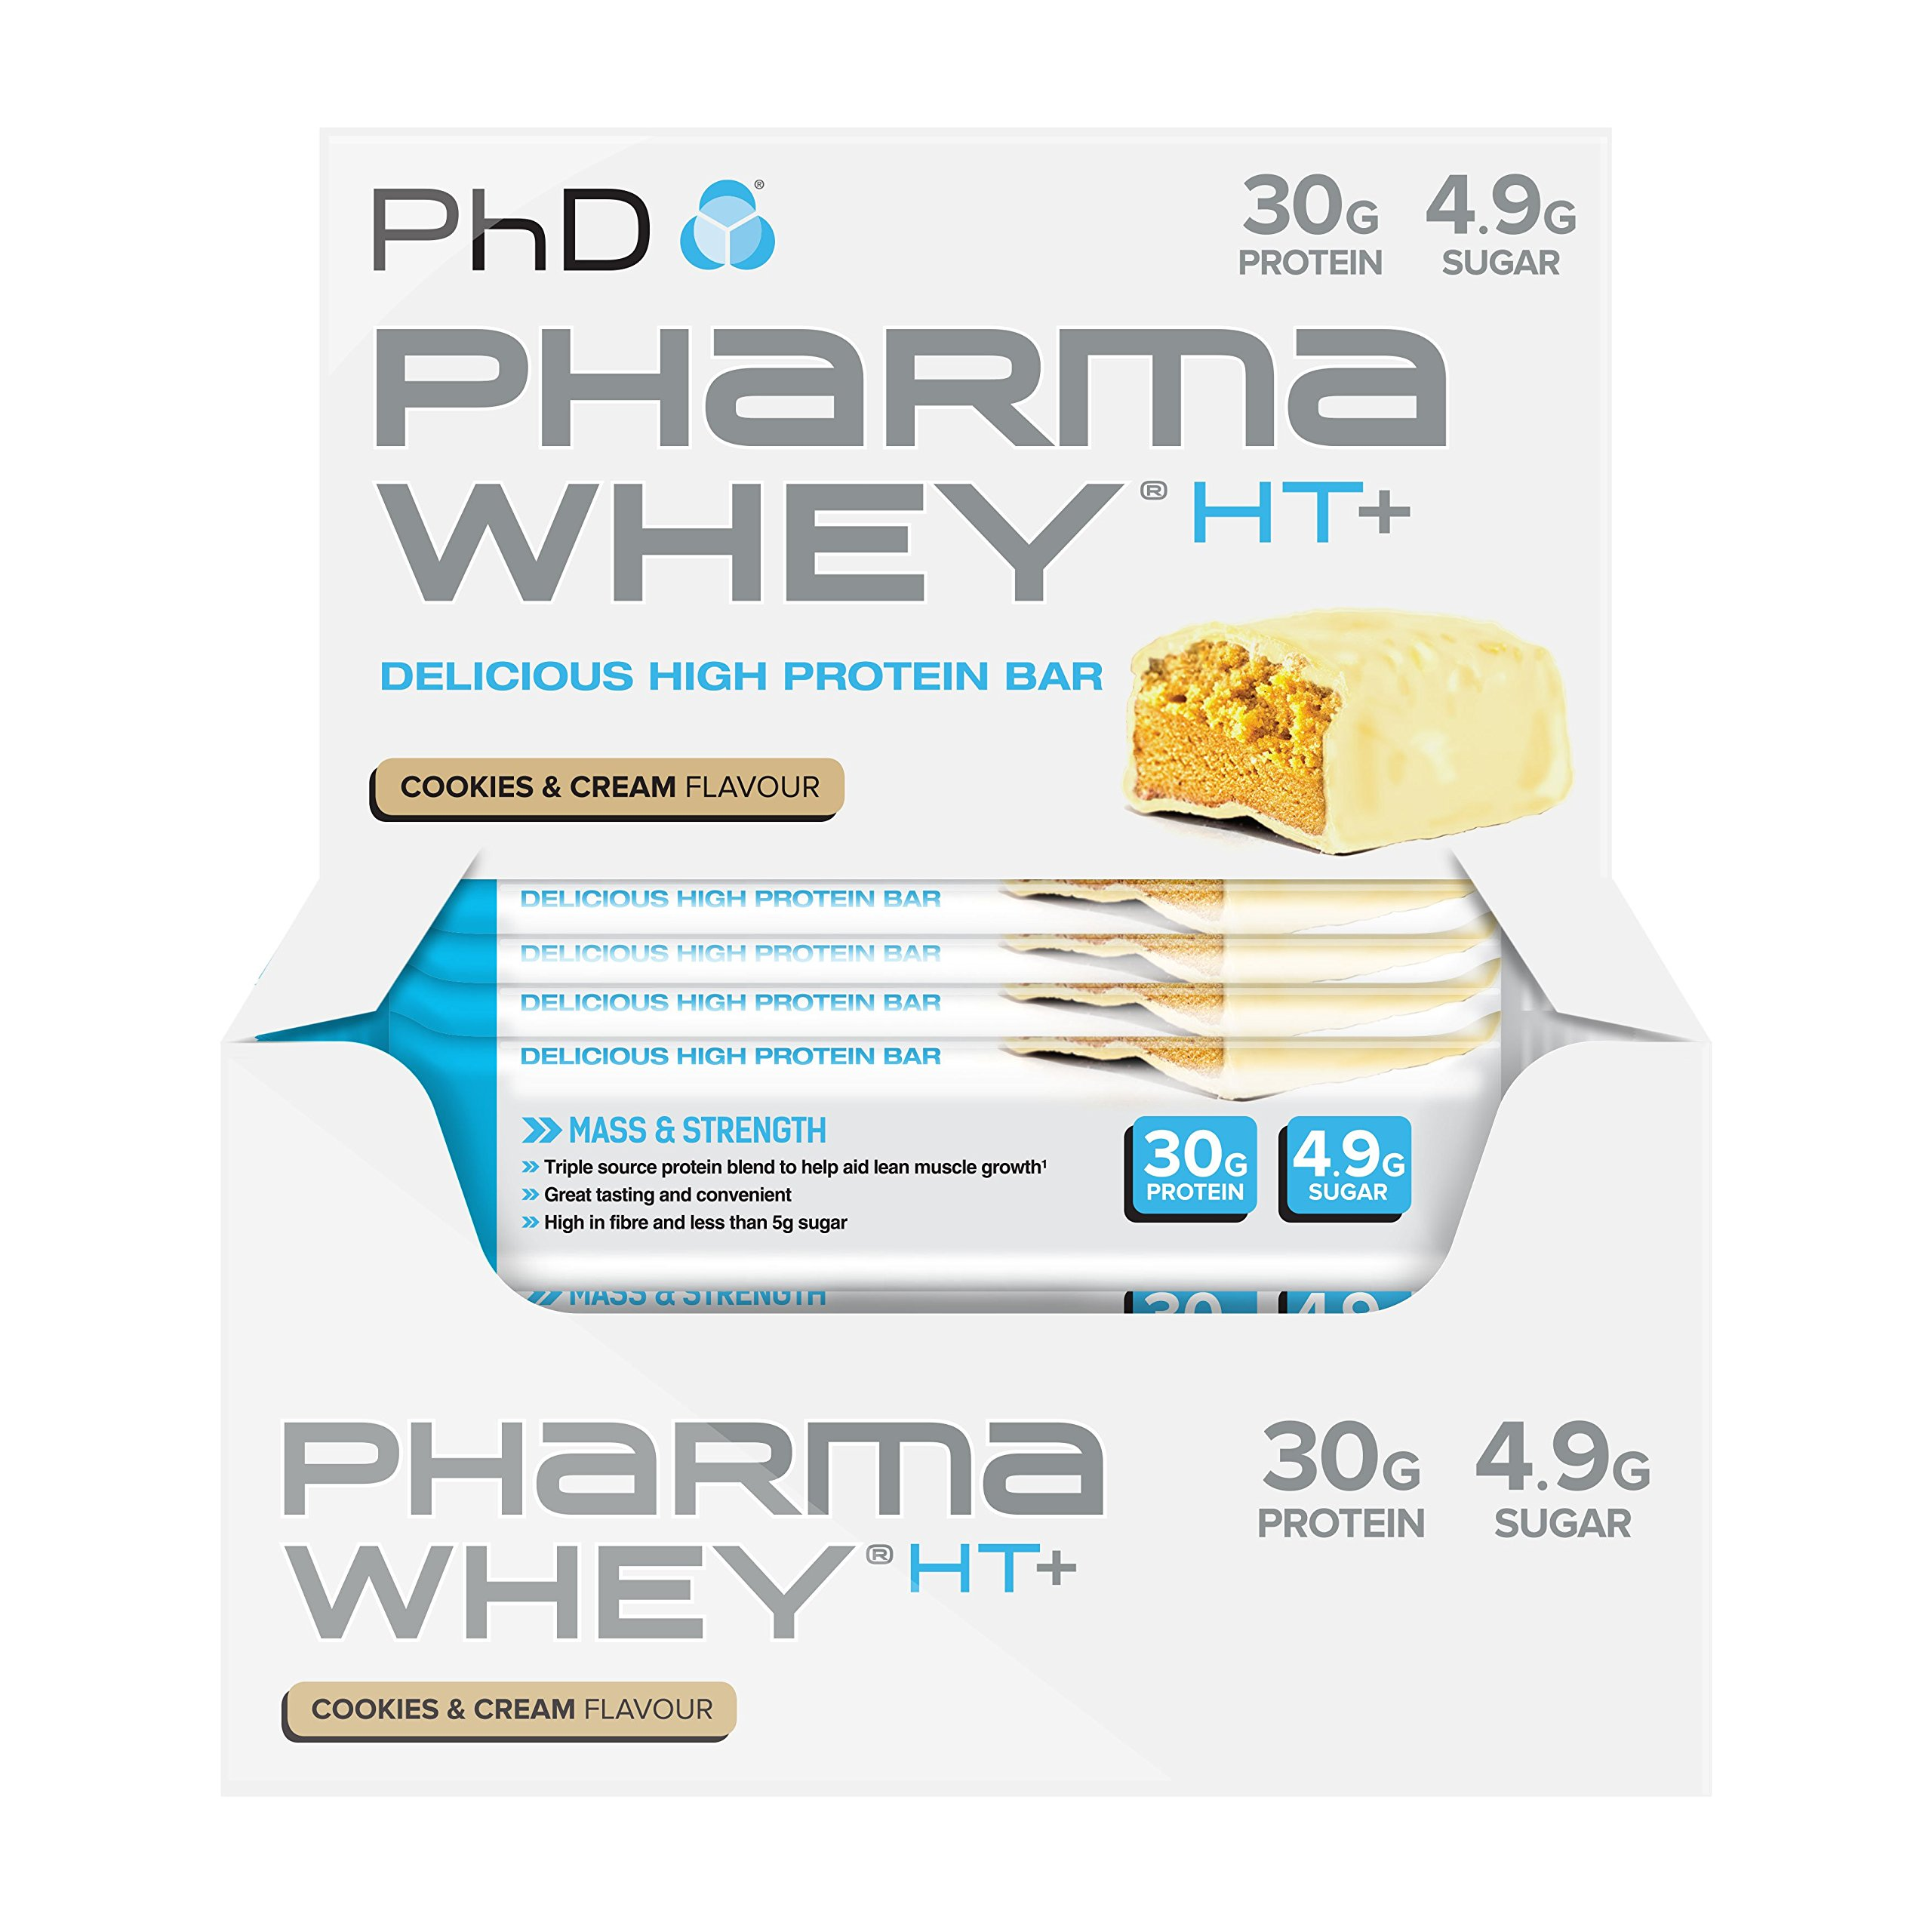 PhD Nutrition Pharma Whey HT+, Cookies and Cream, Pack of 12 x 75g product image